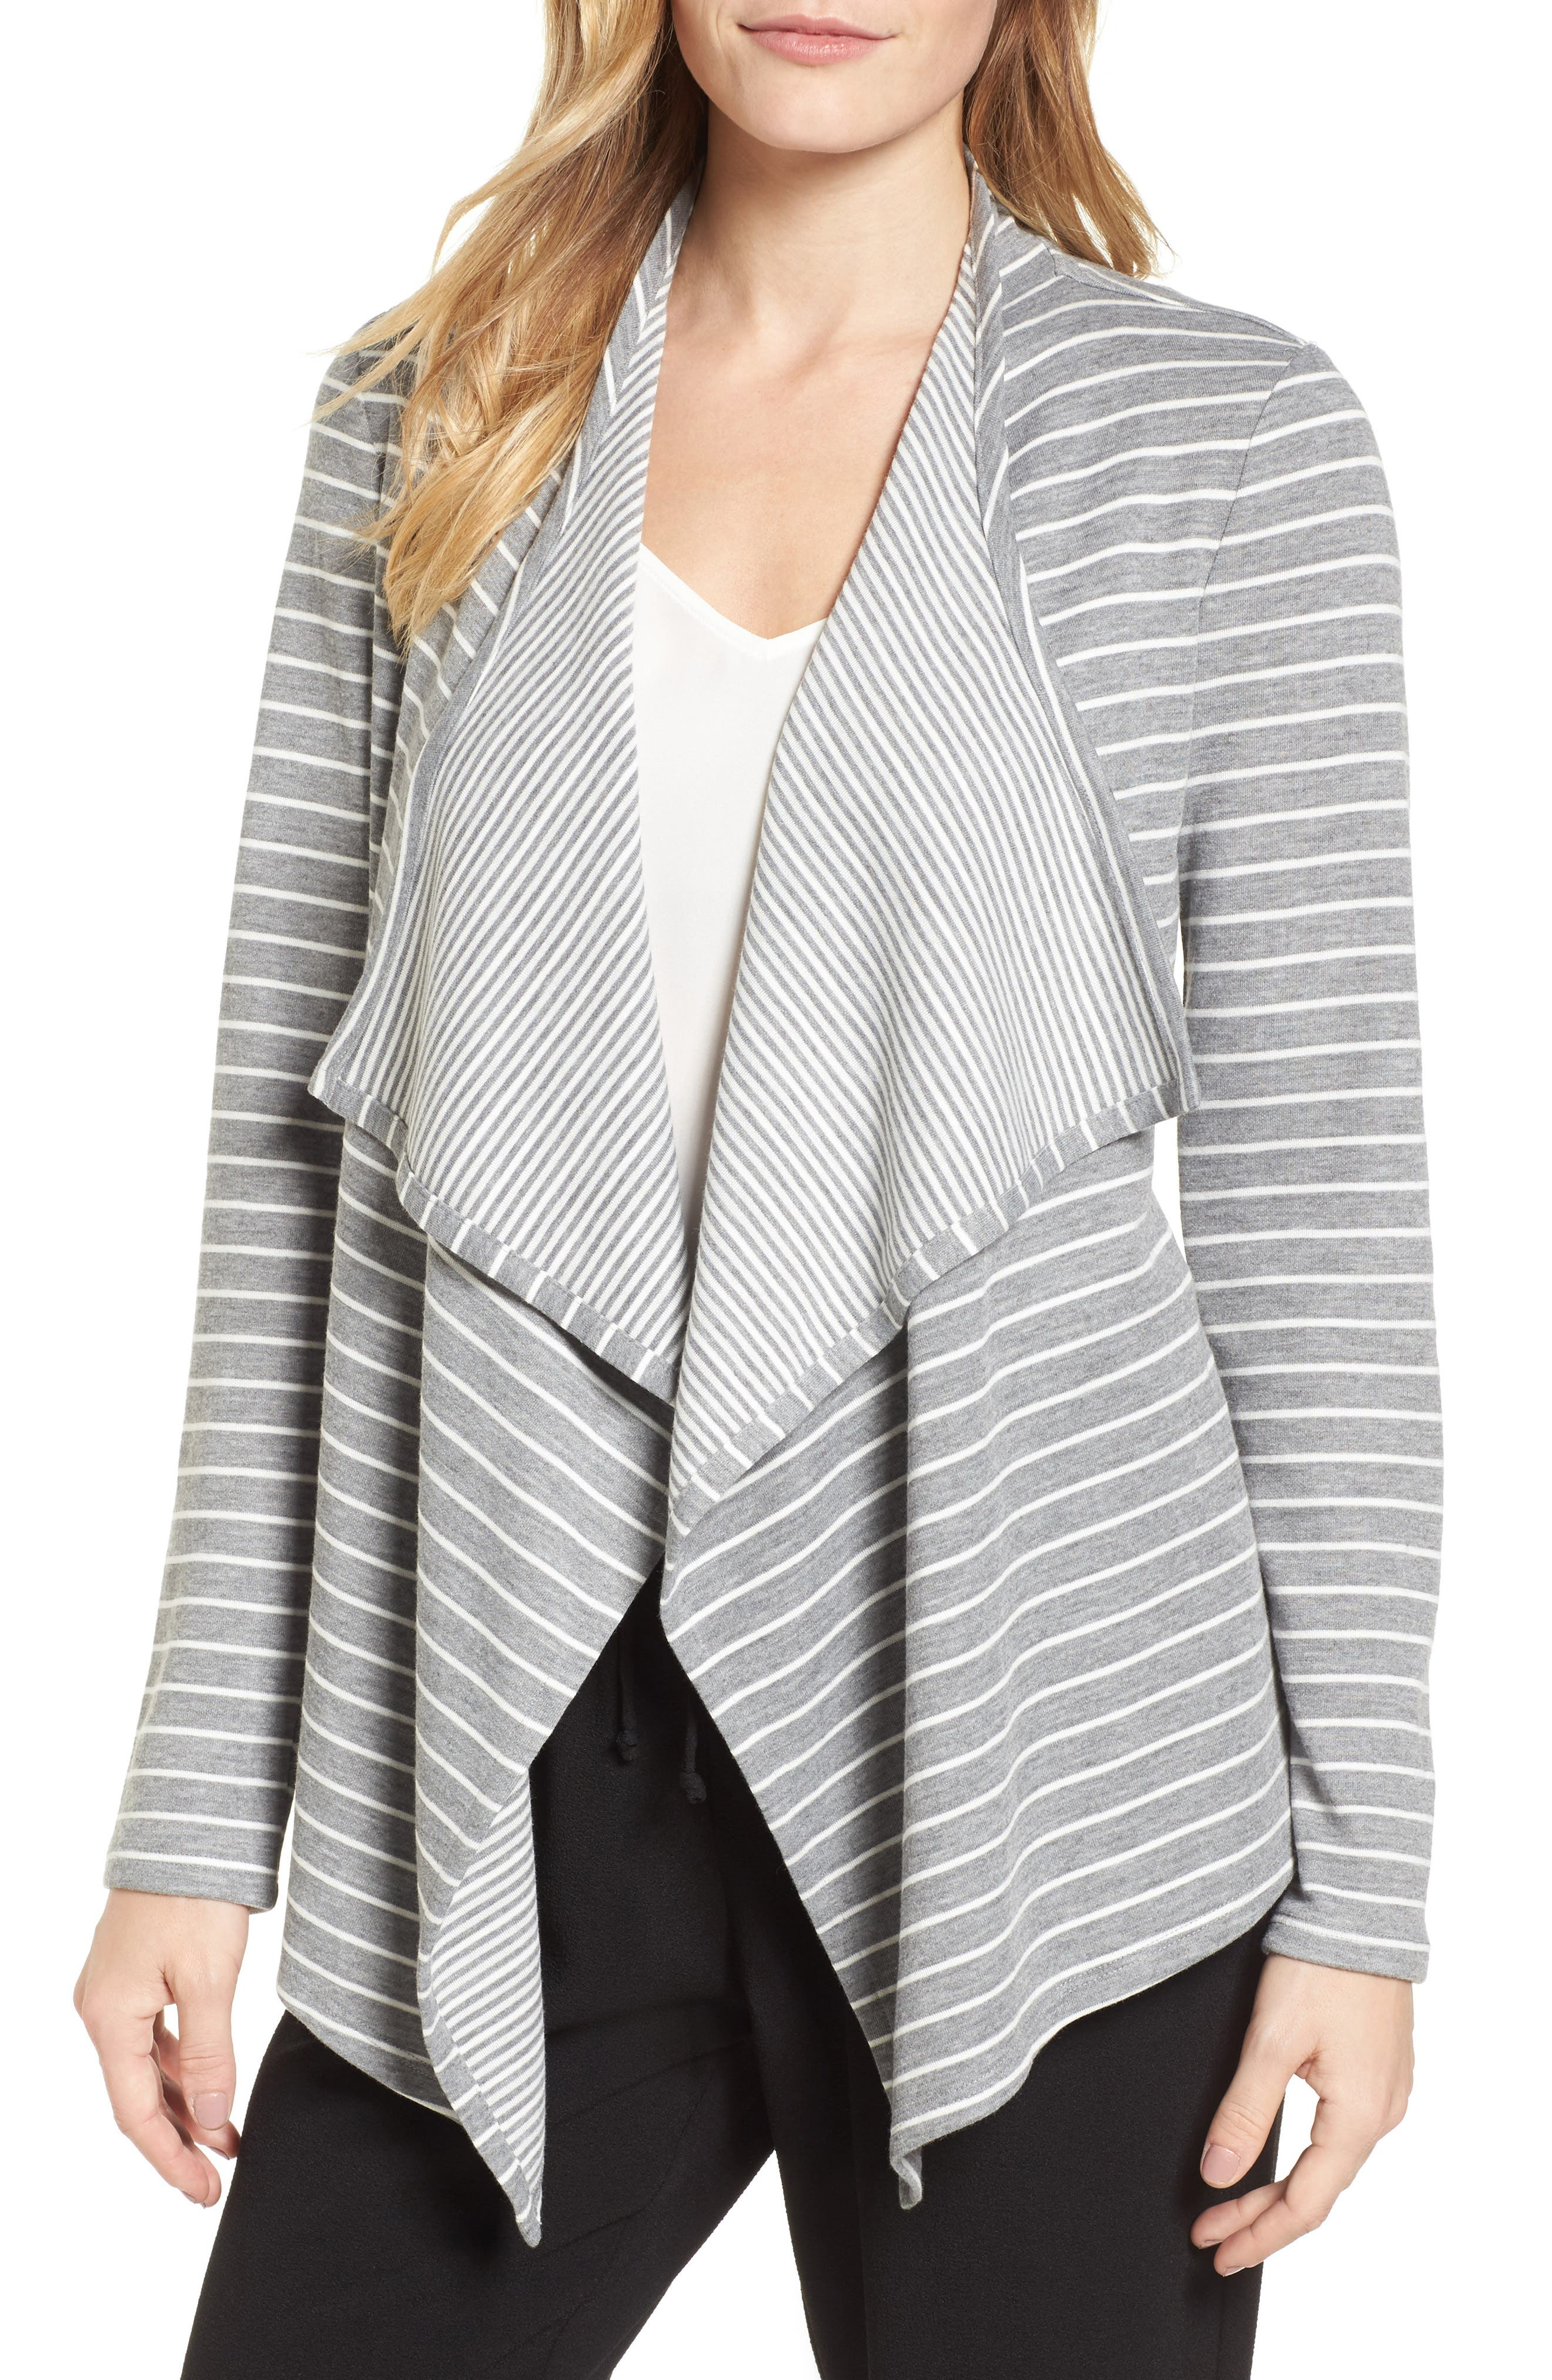 Mixed Stripe Cardigan,                             Main thumbnail 1, color,                             050-Grey Heather